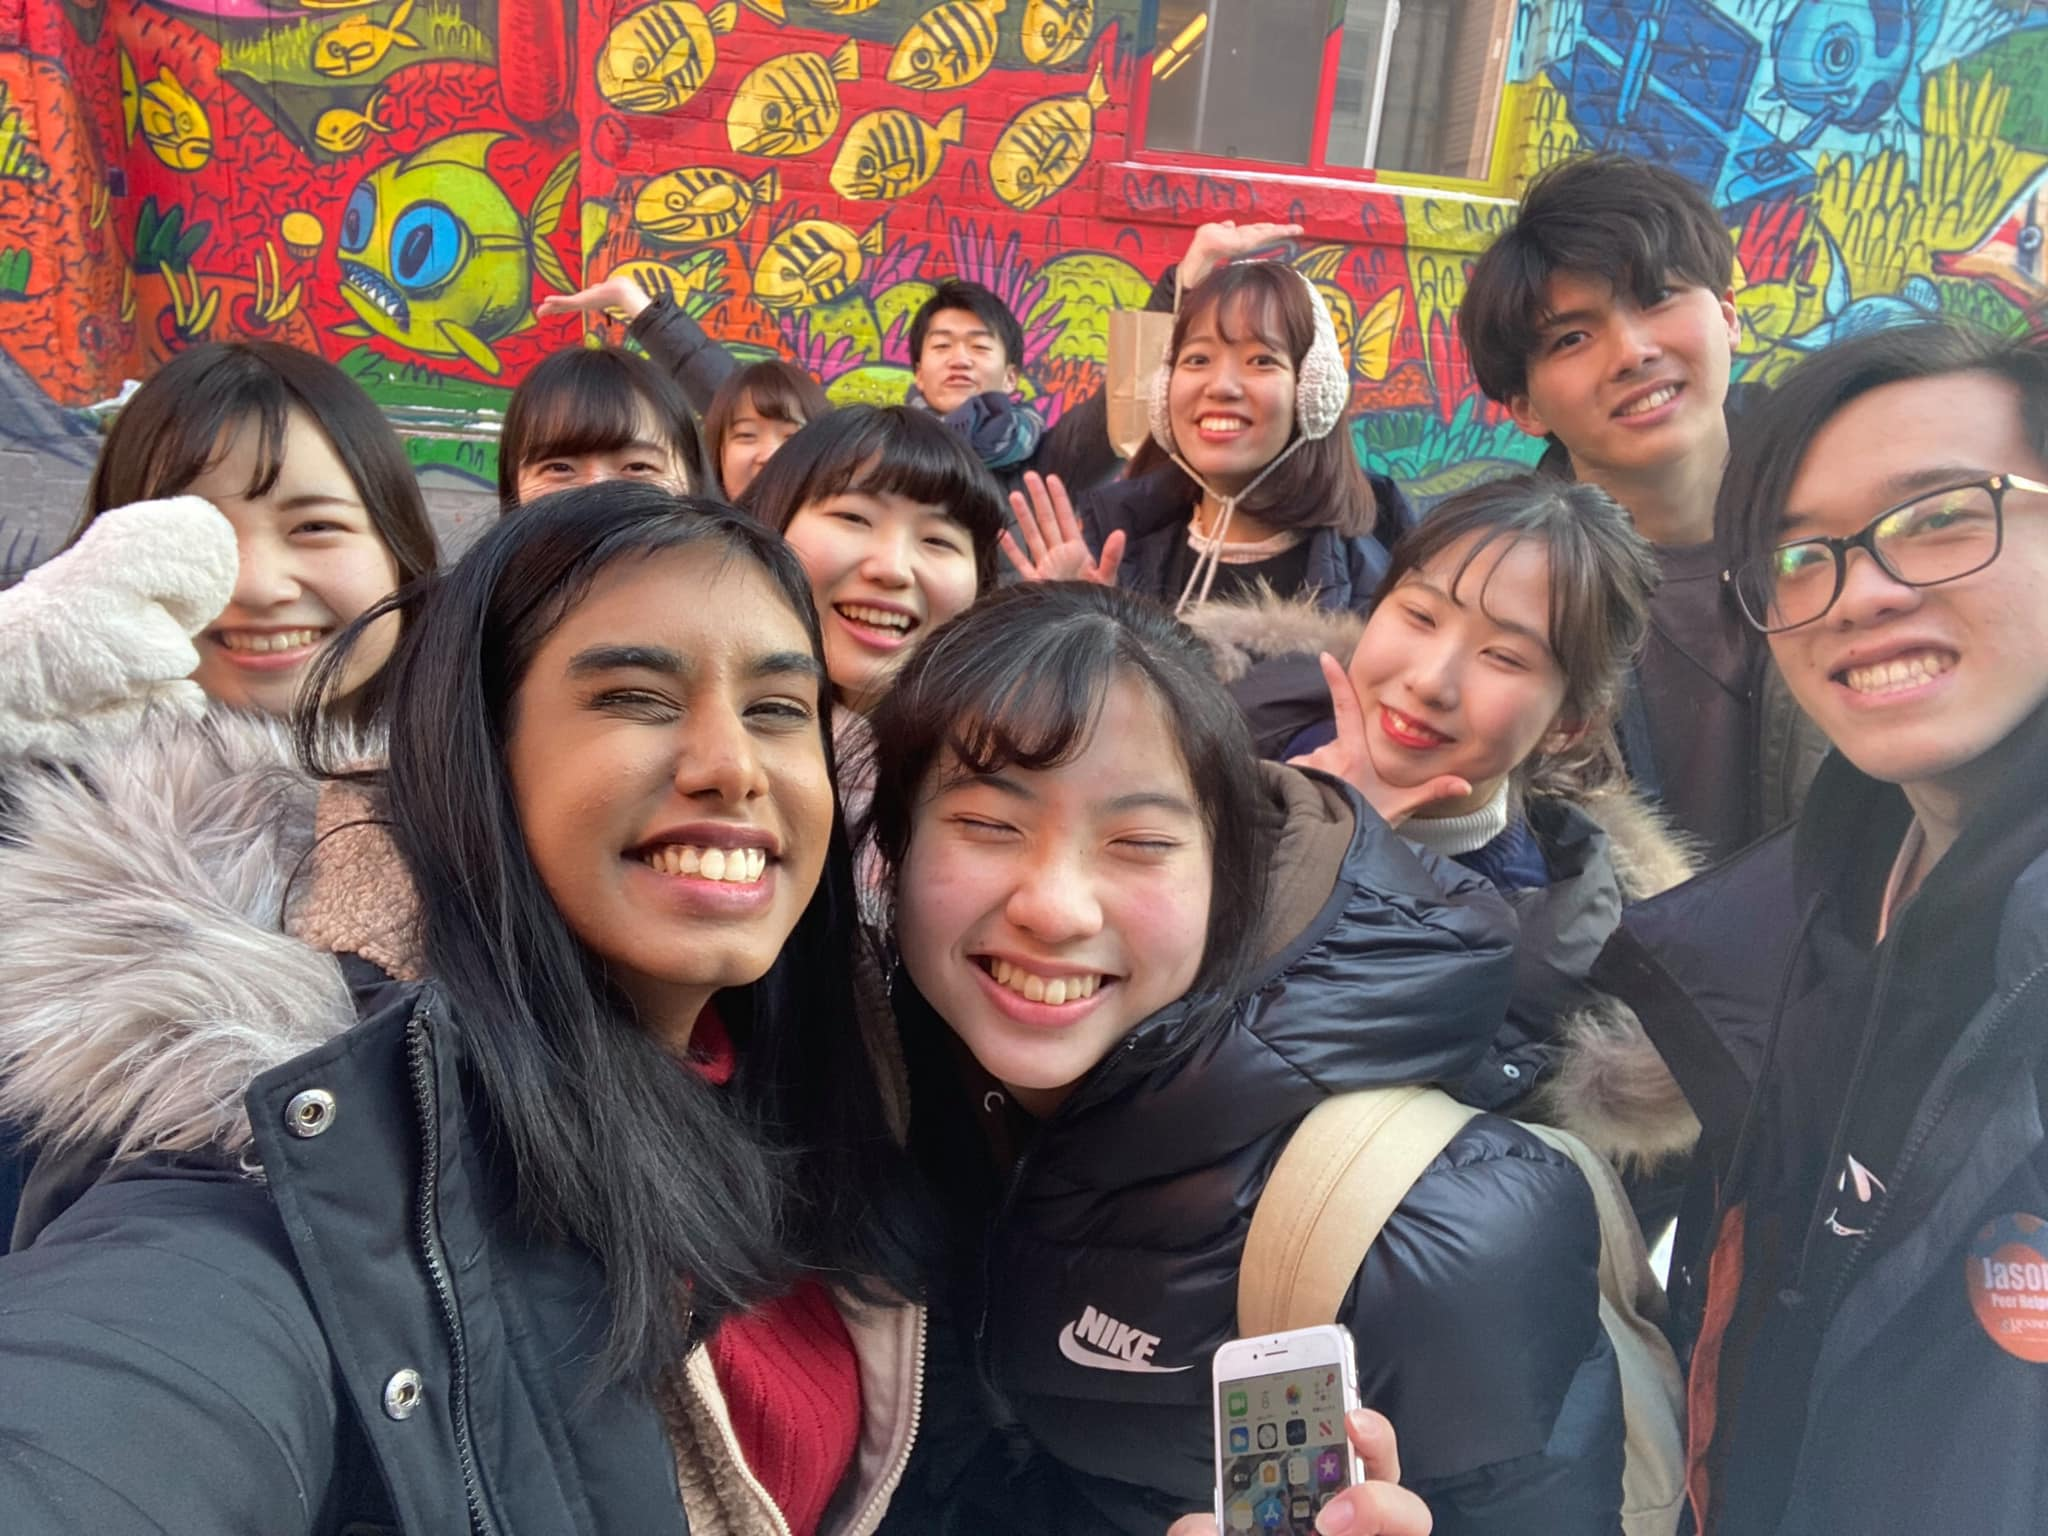 GEAR Students took a selfie in front of the graffiti wall